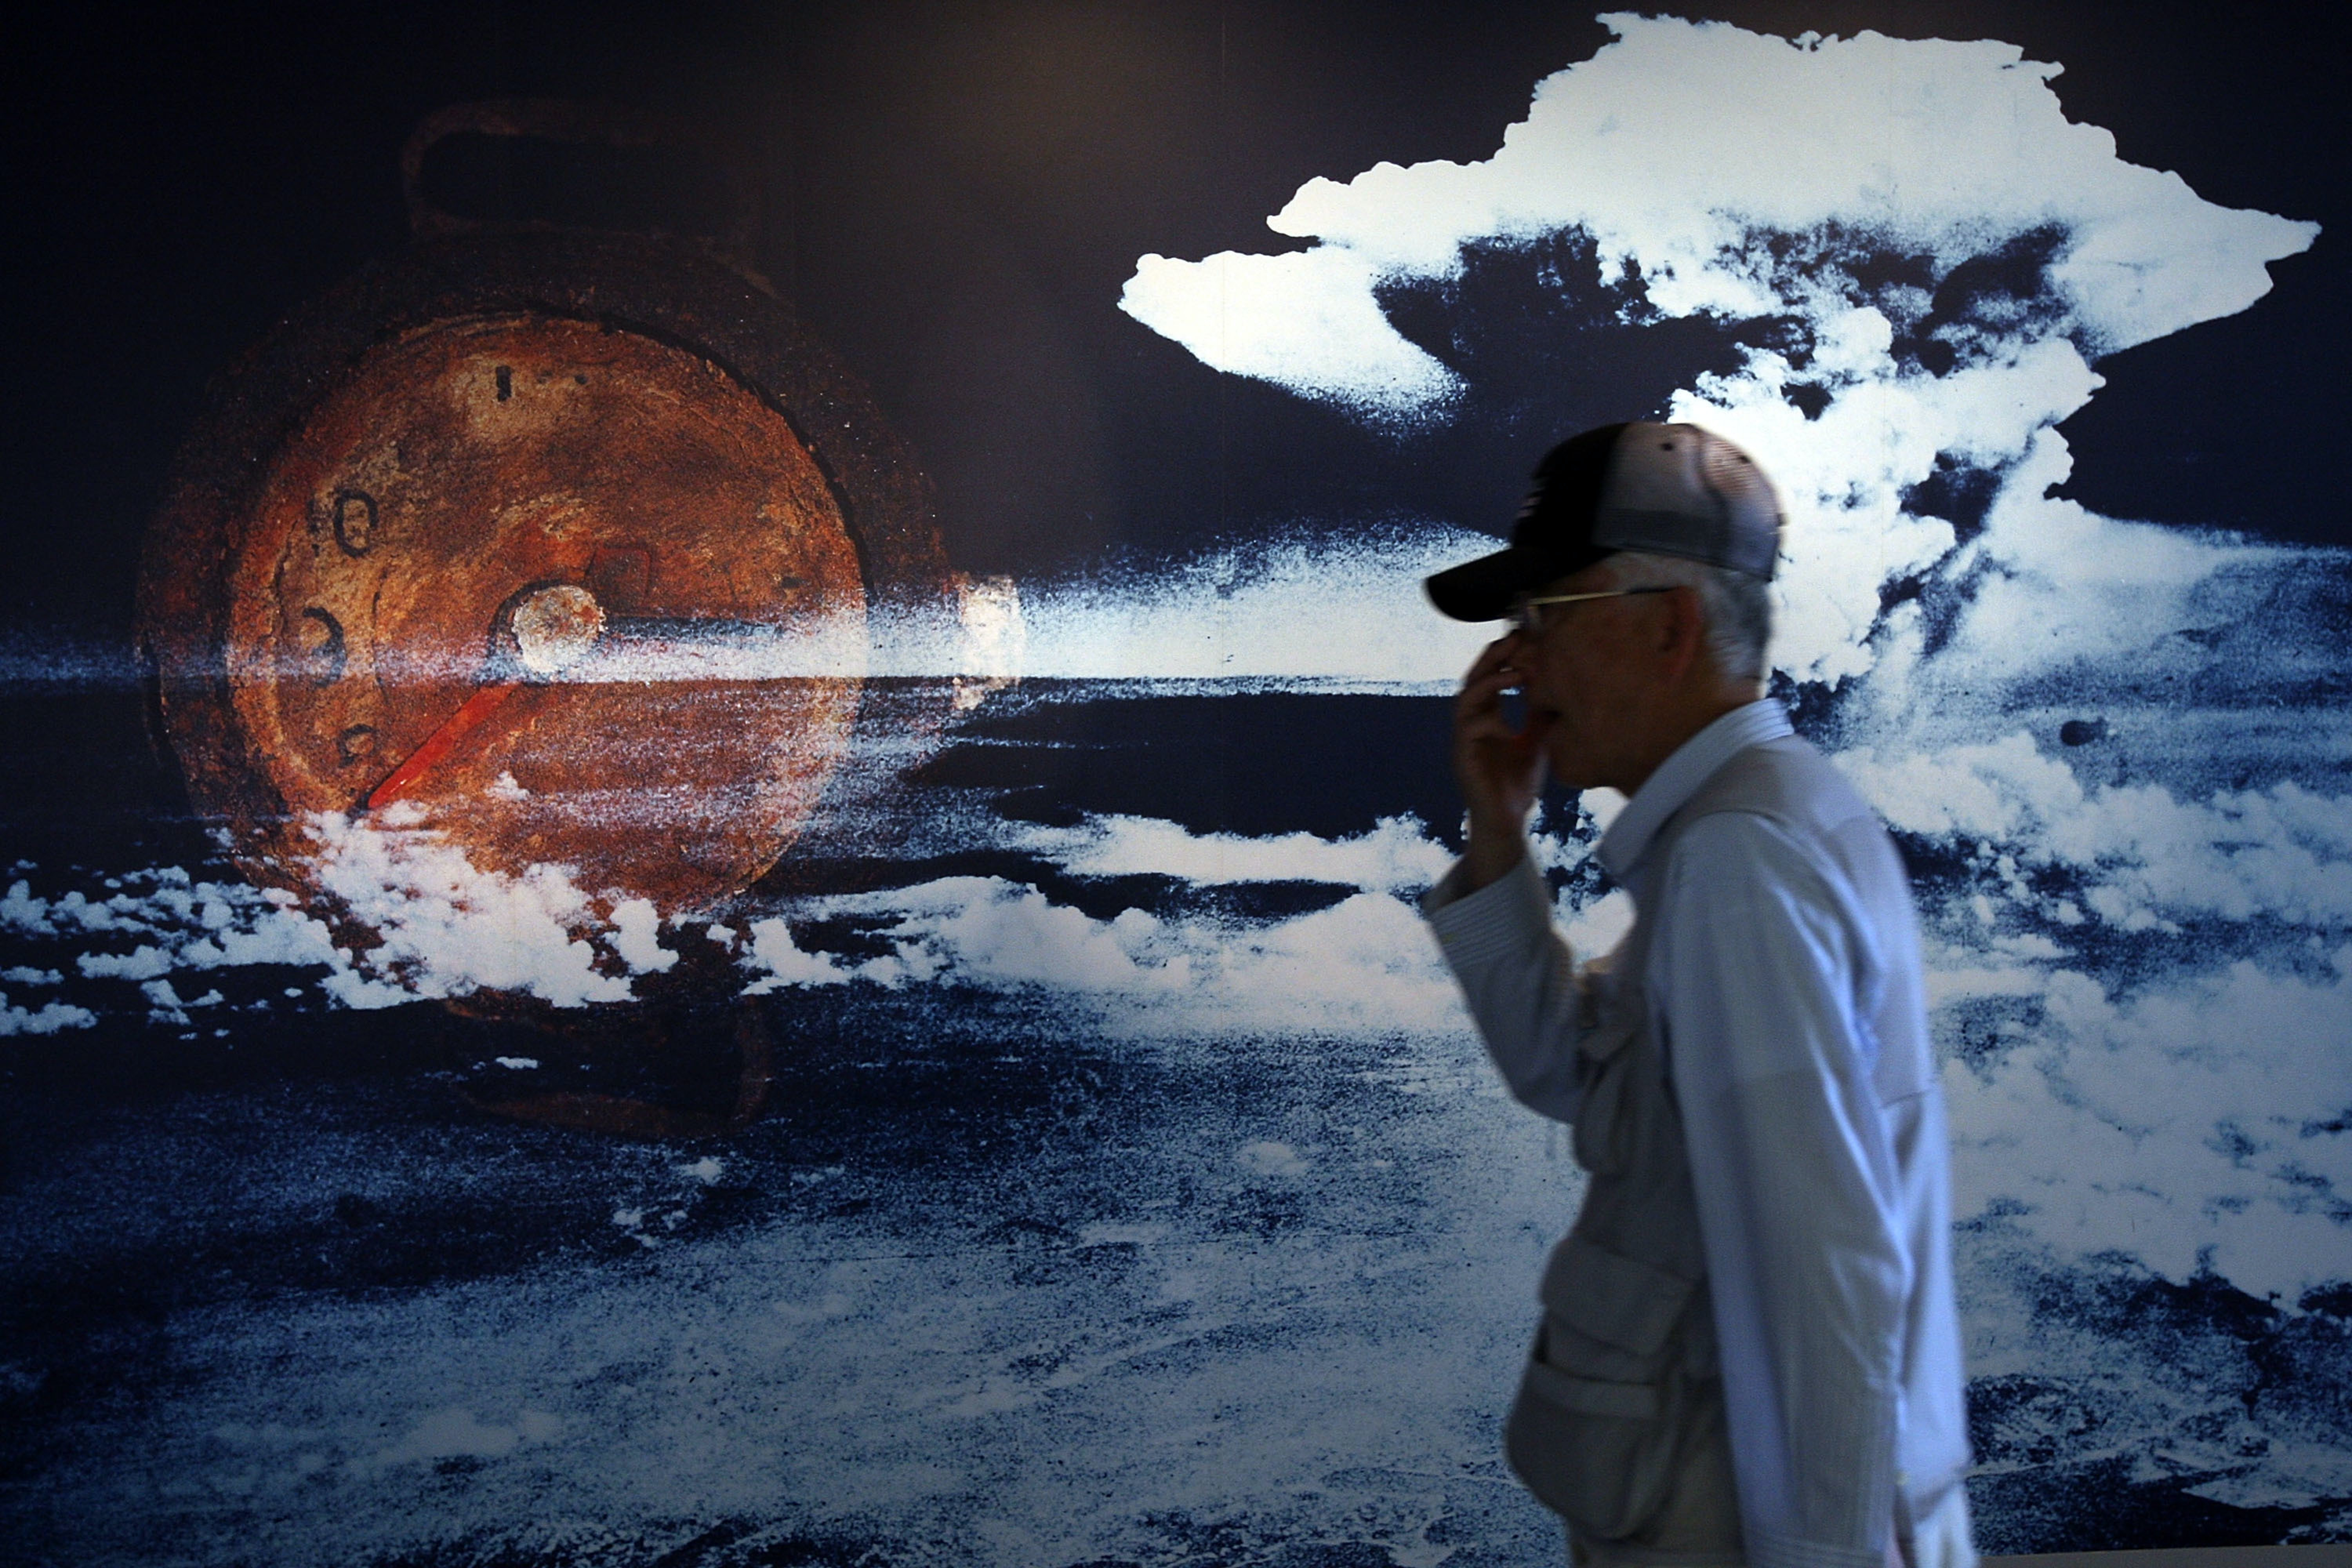 A visitor passes by a wall displaying a picture of the mushroom cloud when the atomic bomb was dropped over Hiroshima in 1945, at the Peace Memorial Museum in Japan.